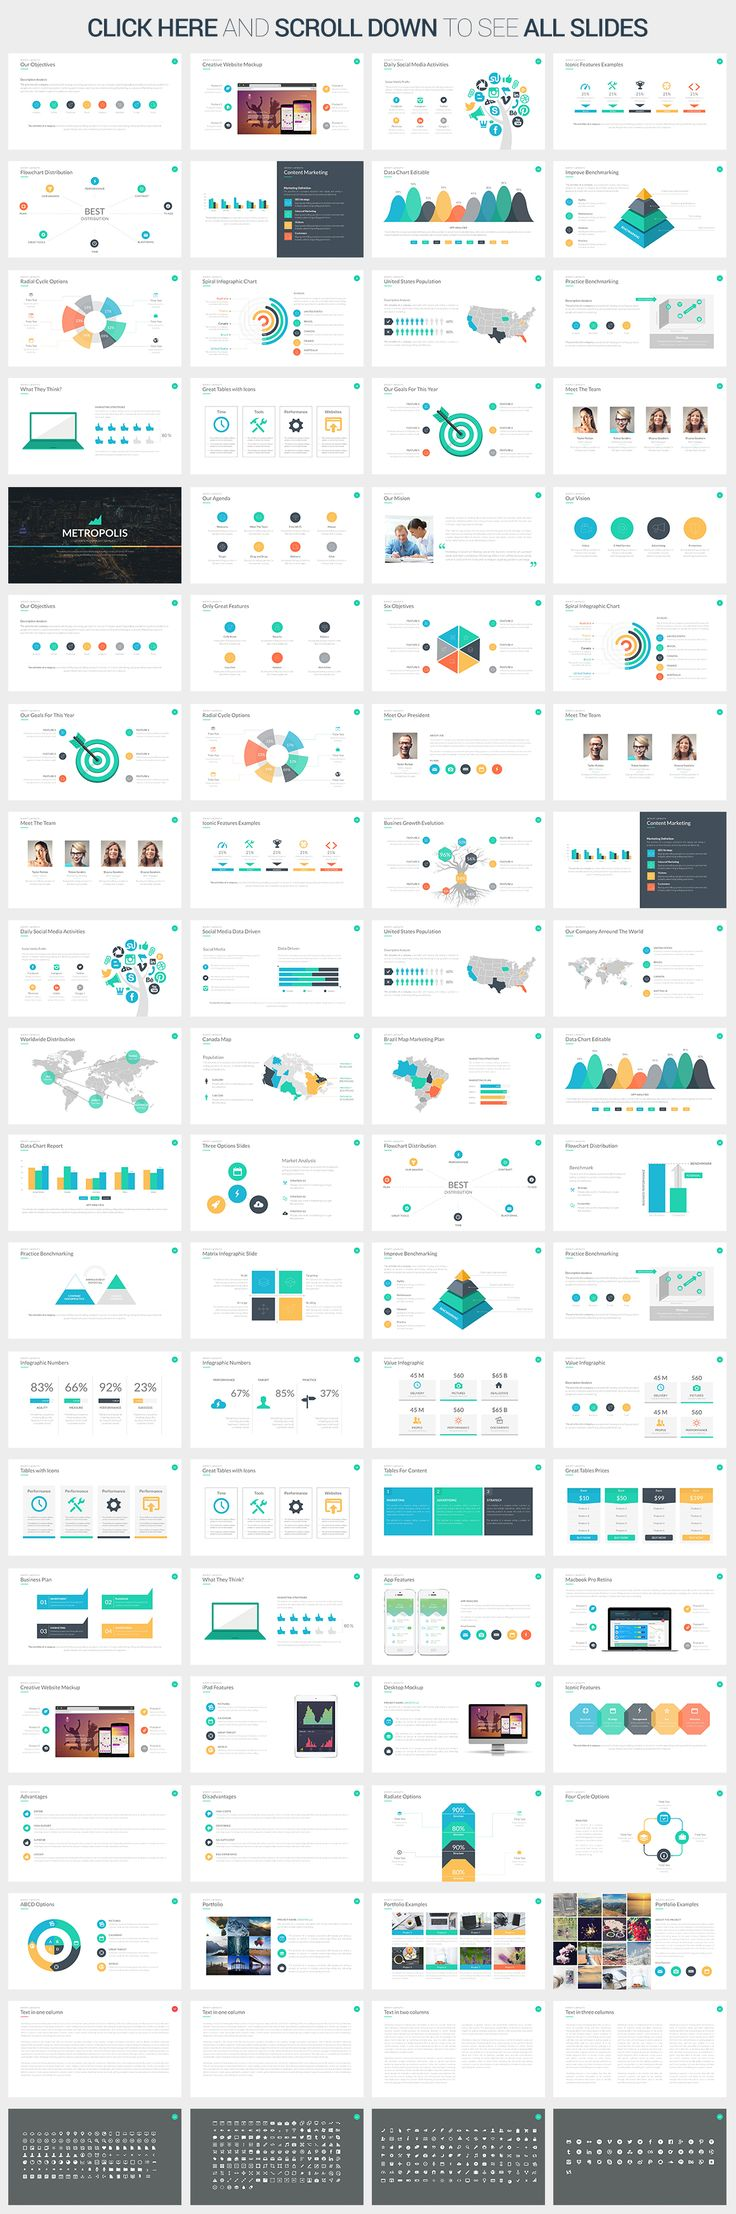 42 best best powerpoint templates images on pinterest keynote metropolis powerpoint template by slidepro on creative market toneelgroepblik Image collections